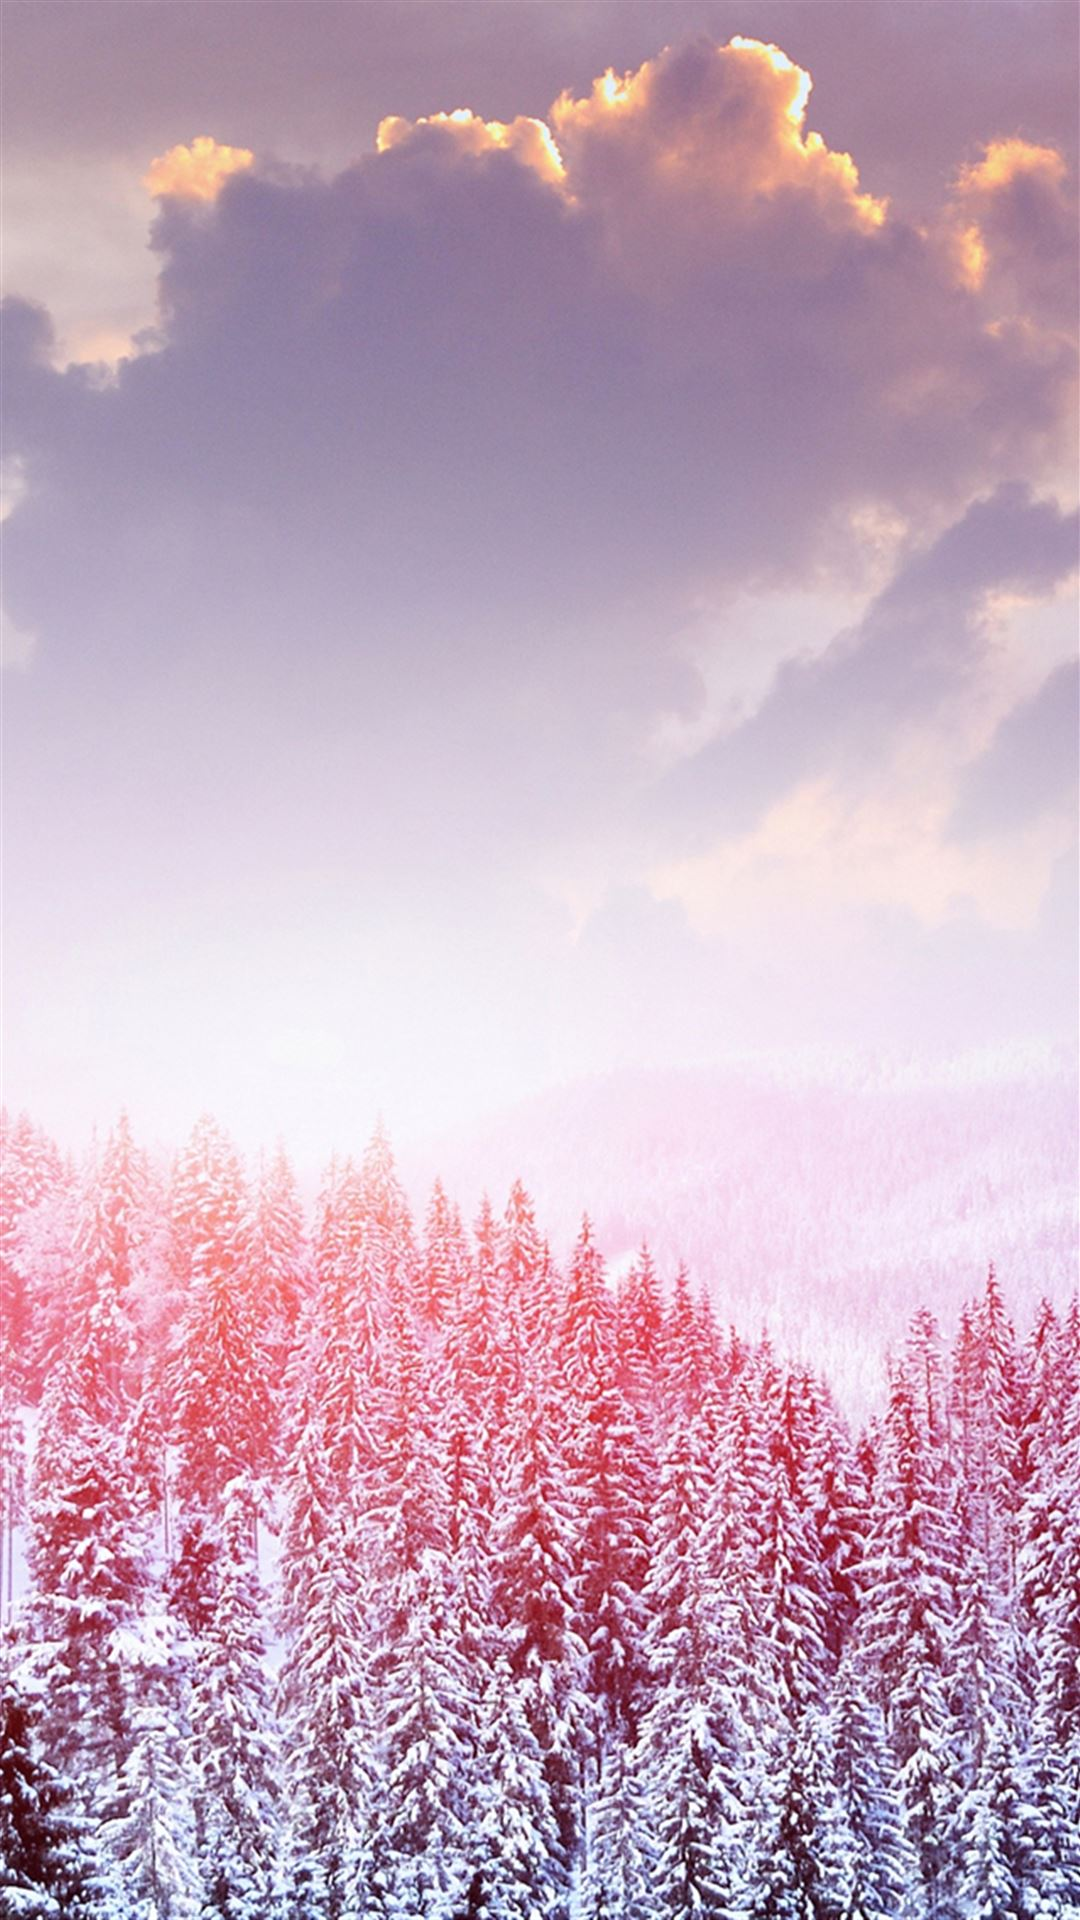 Landscape Winter Snow Trees Mountains Forest Sky Clouds Iphone Se Wallpaper